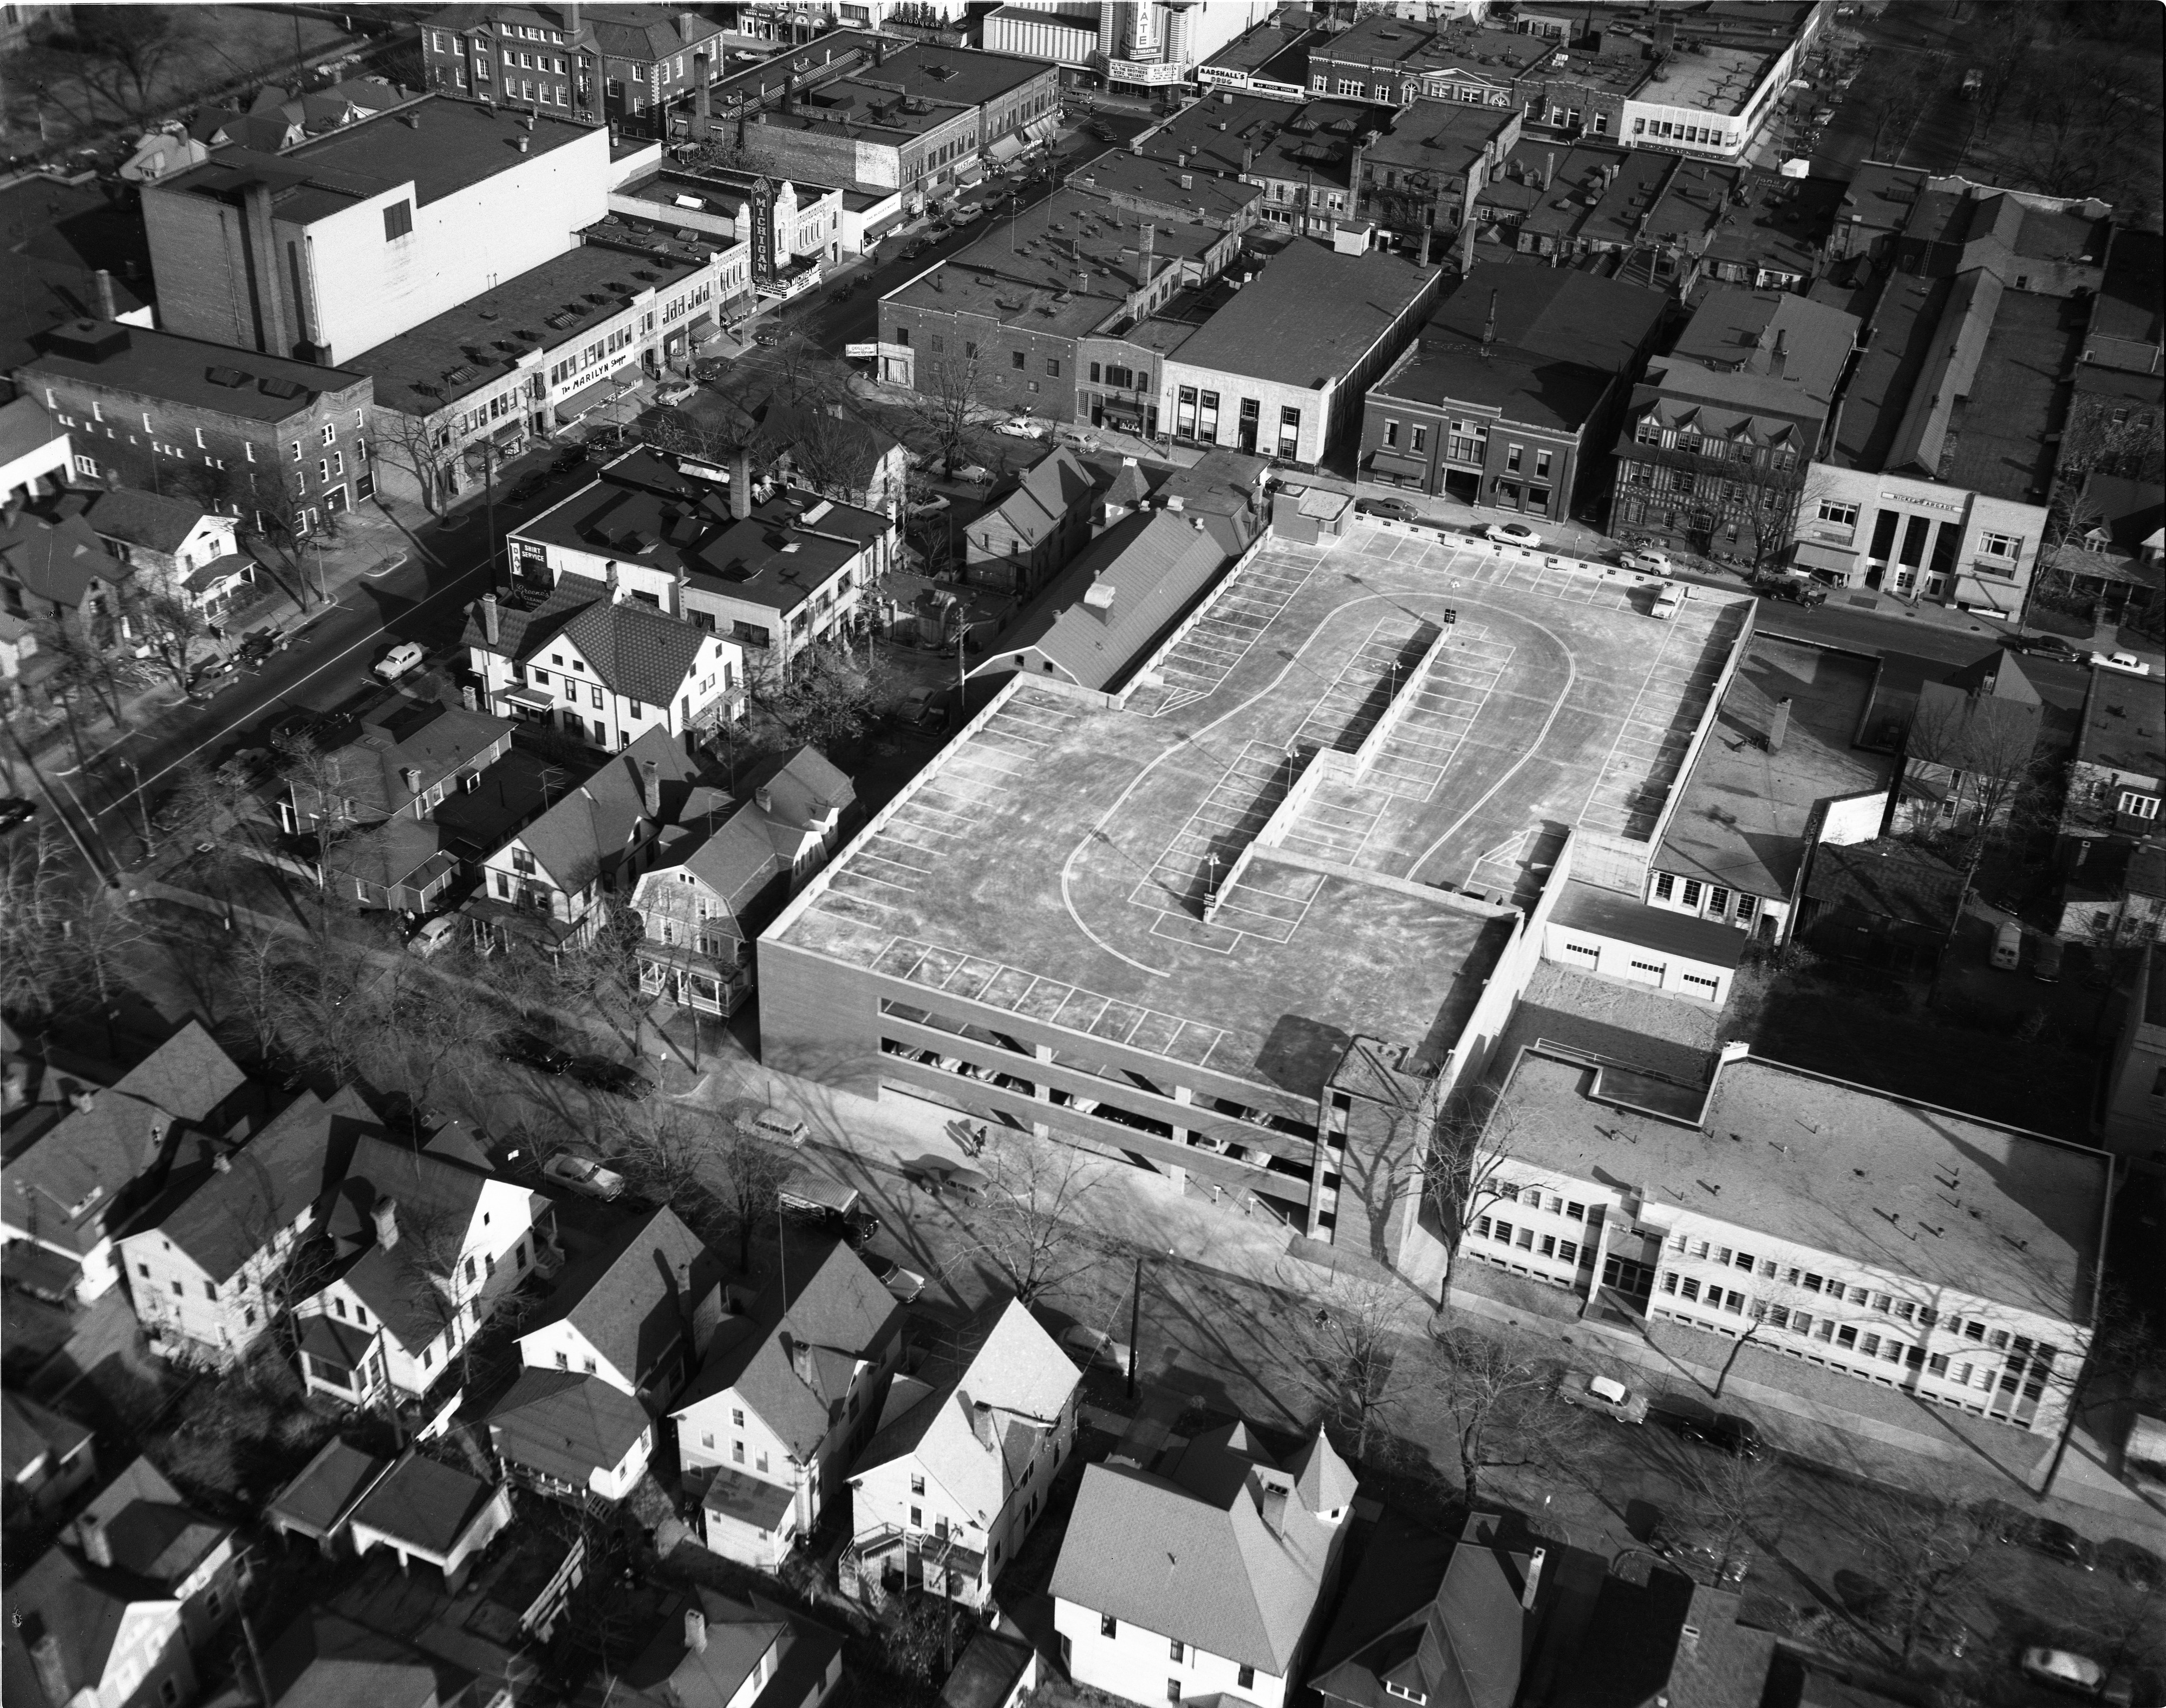 Aerial Photo Of Maynard Street Carport, April 1954 image